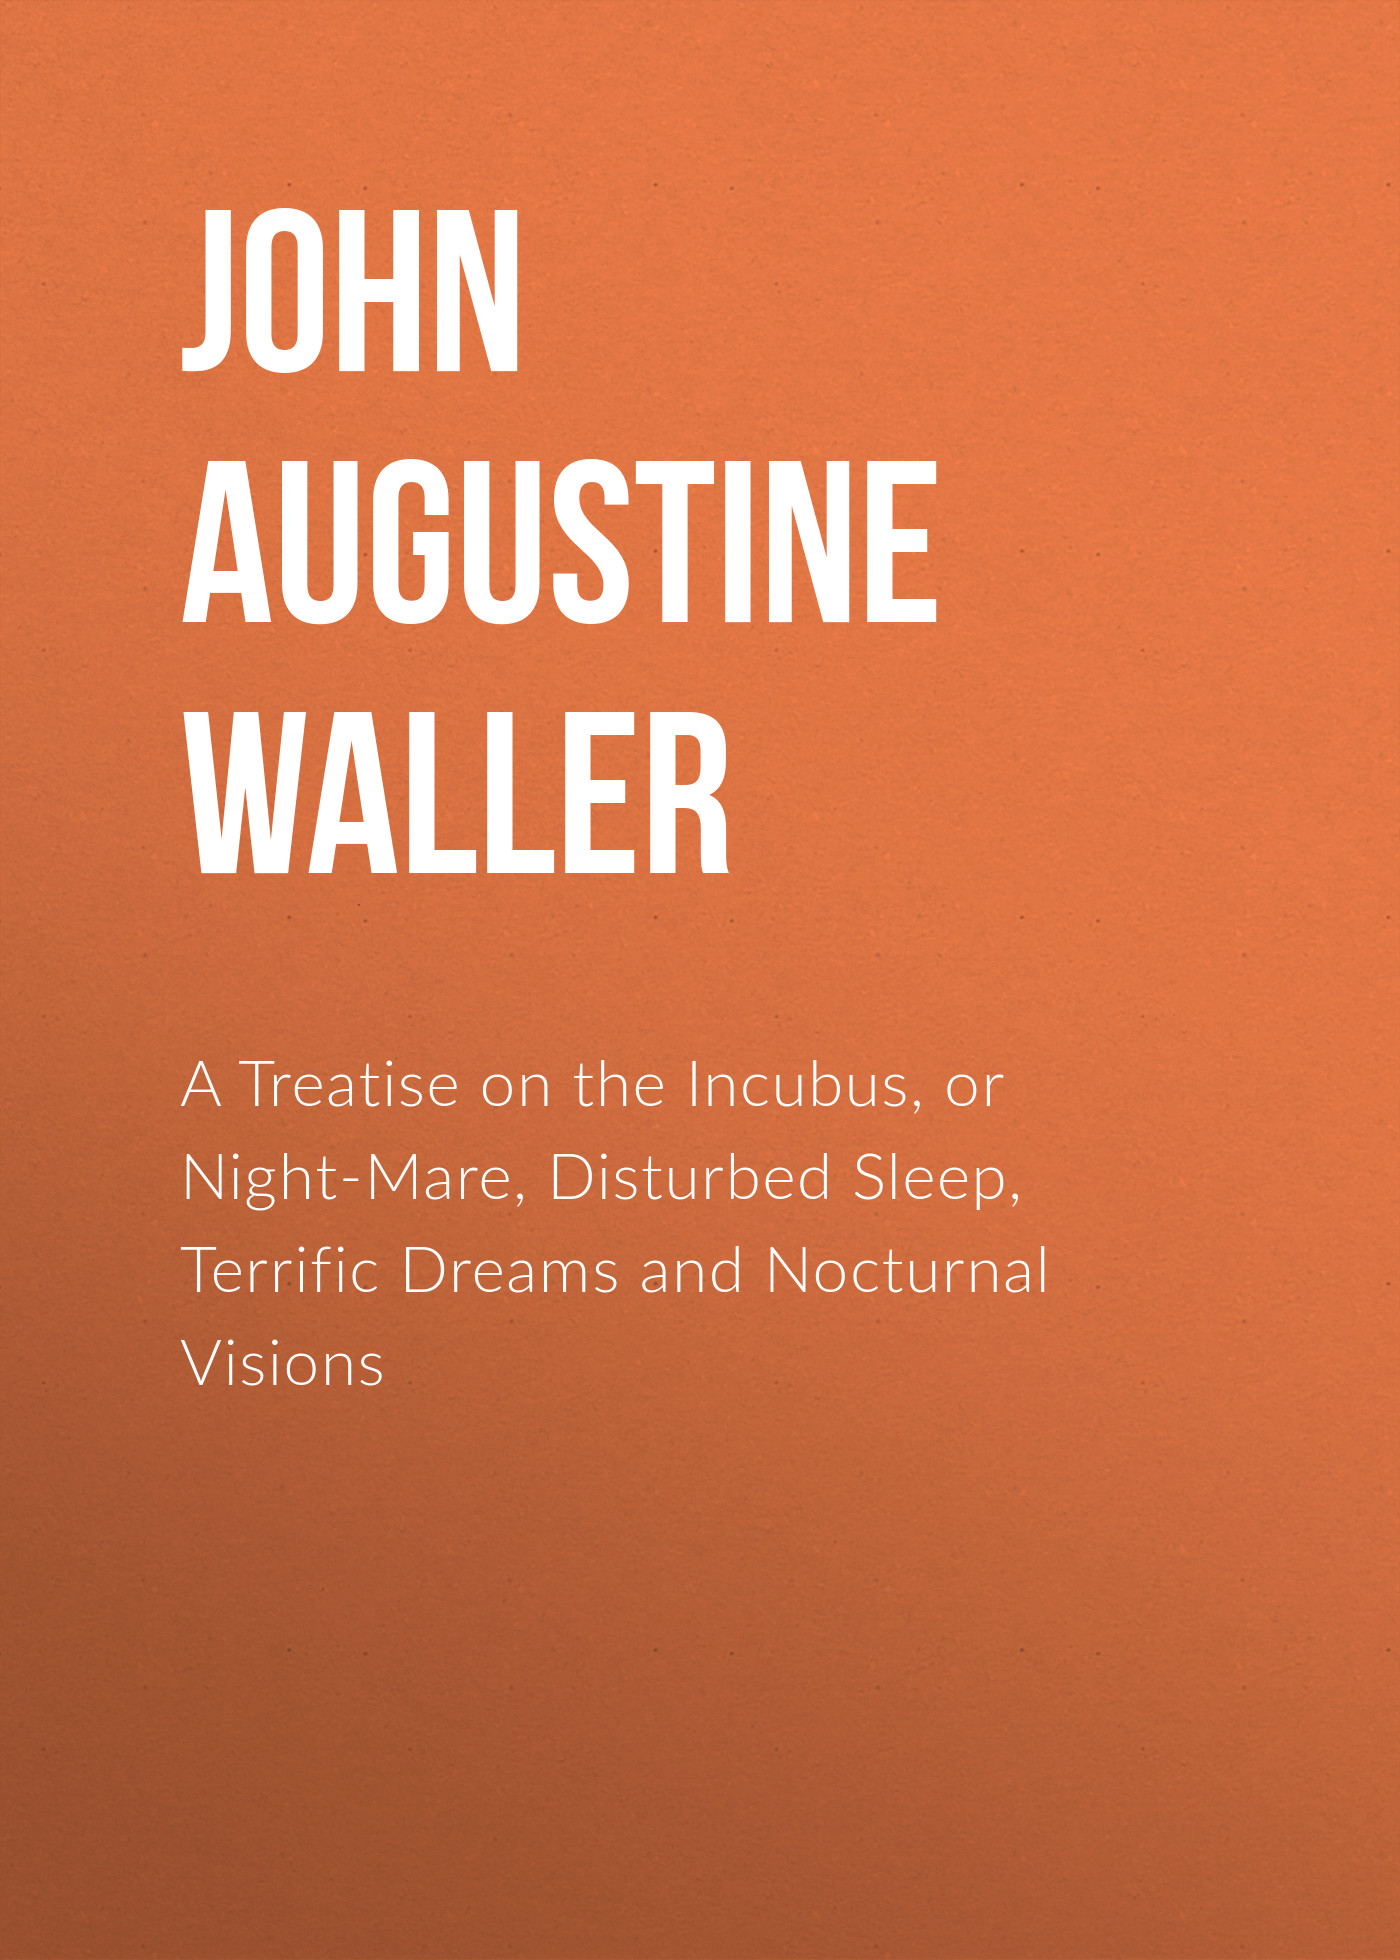 Фото - John Augustine Waller A Treatise on the Incubus, or Night-Mare, Disturbed Sleep, Terrific Dreams and Nocturnal Visions balancing heaven and earth a memoir of visions dreams and realizations